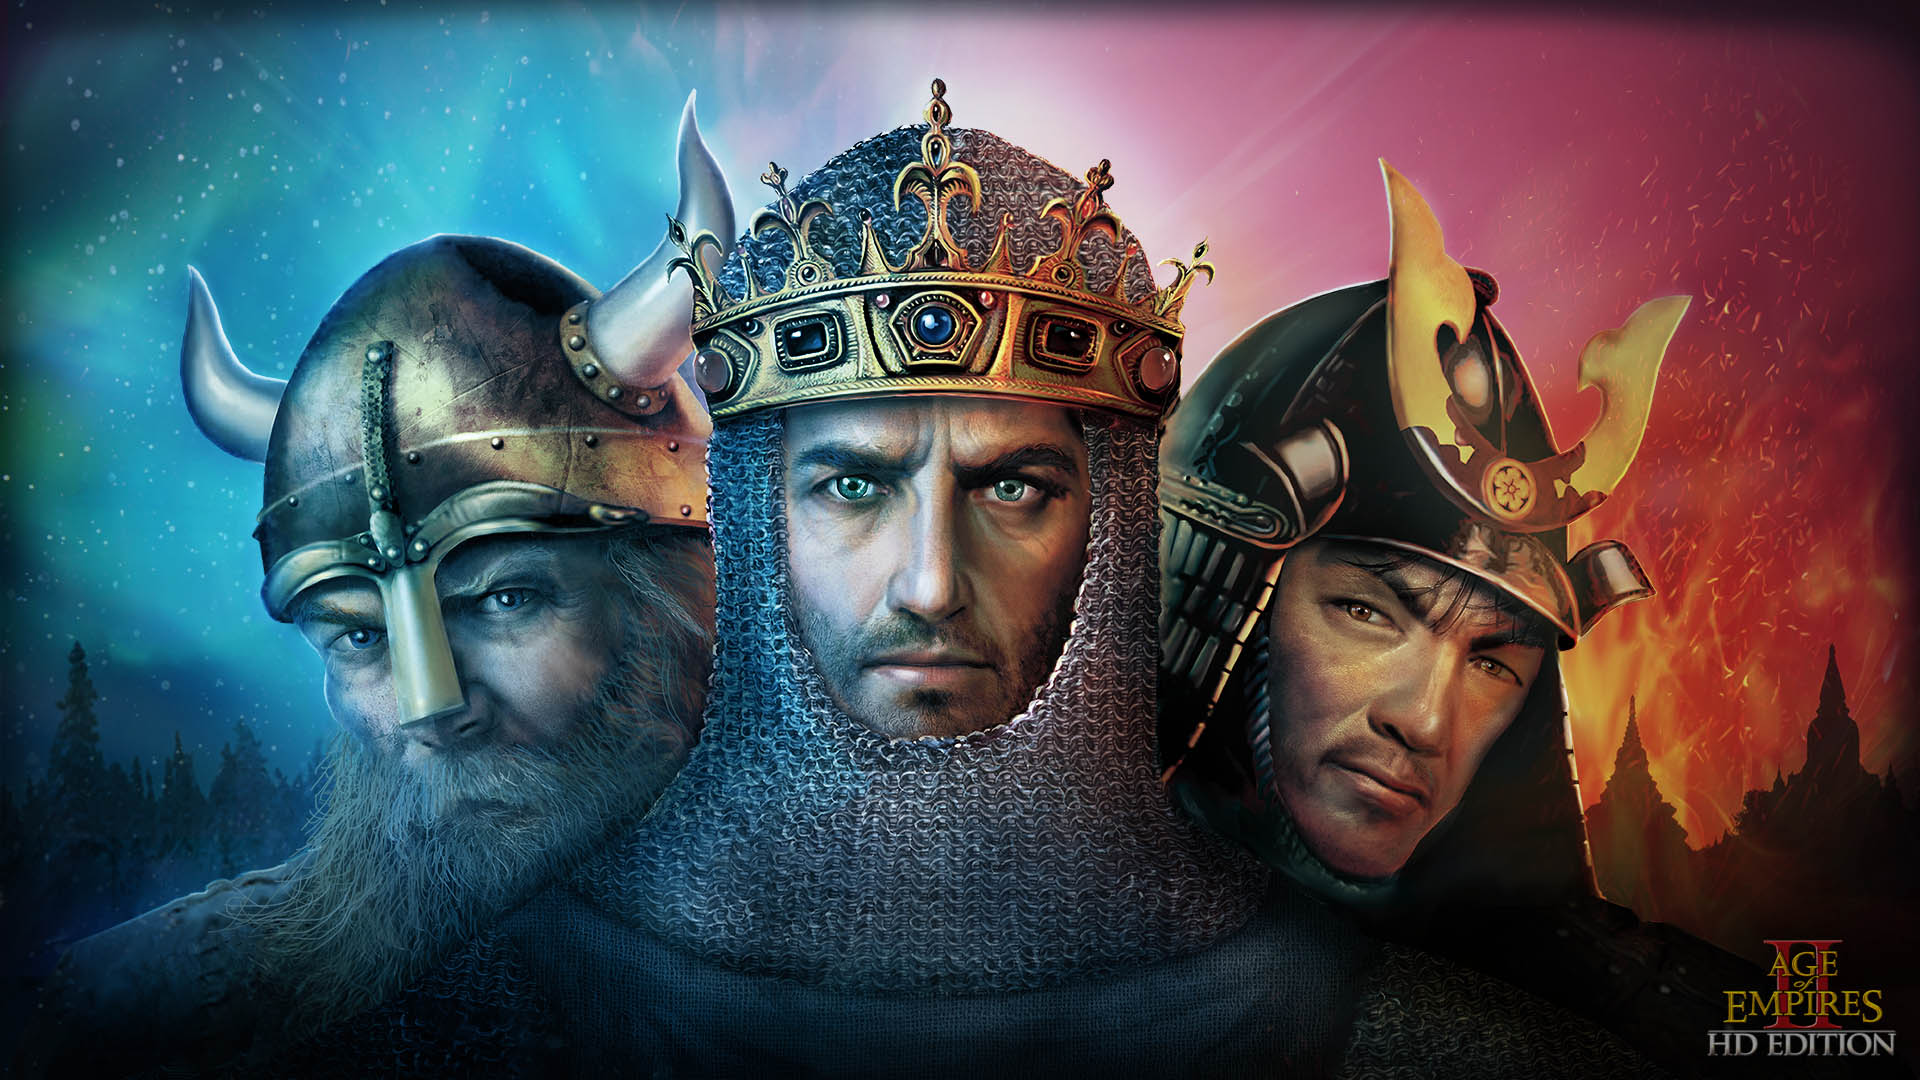 Age Of Empires Wallpaper: Age Of Empires II HD - King Of Memes